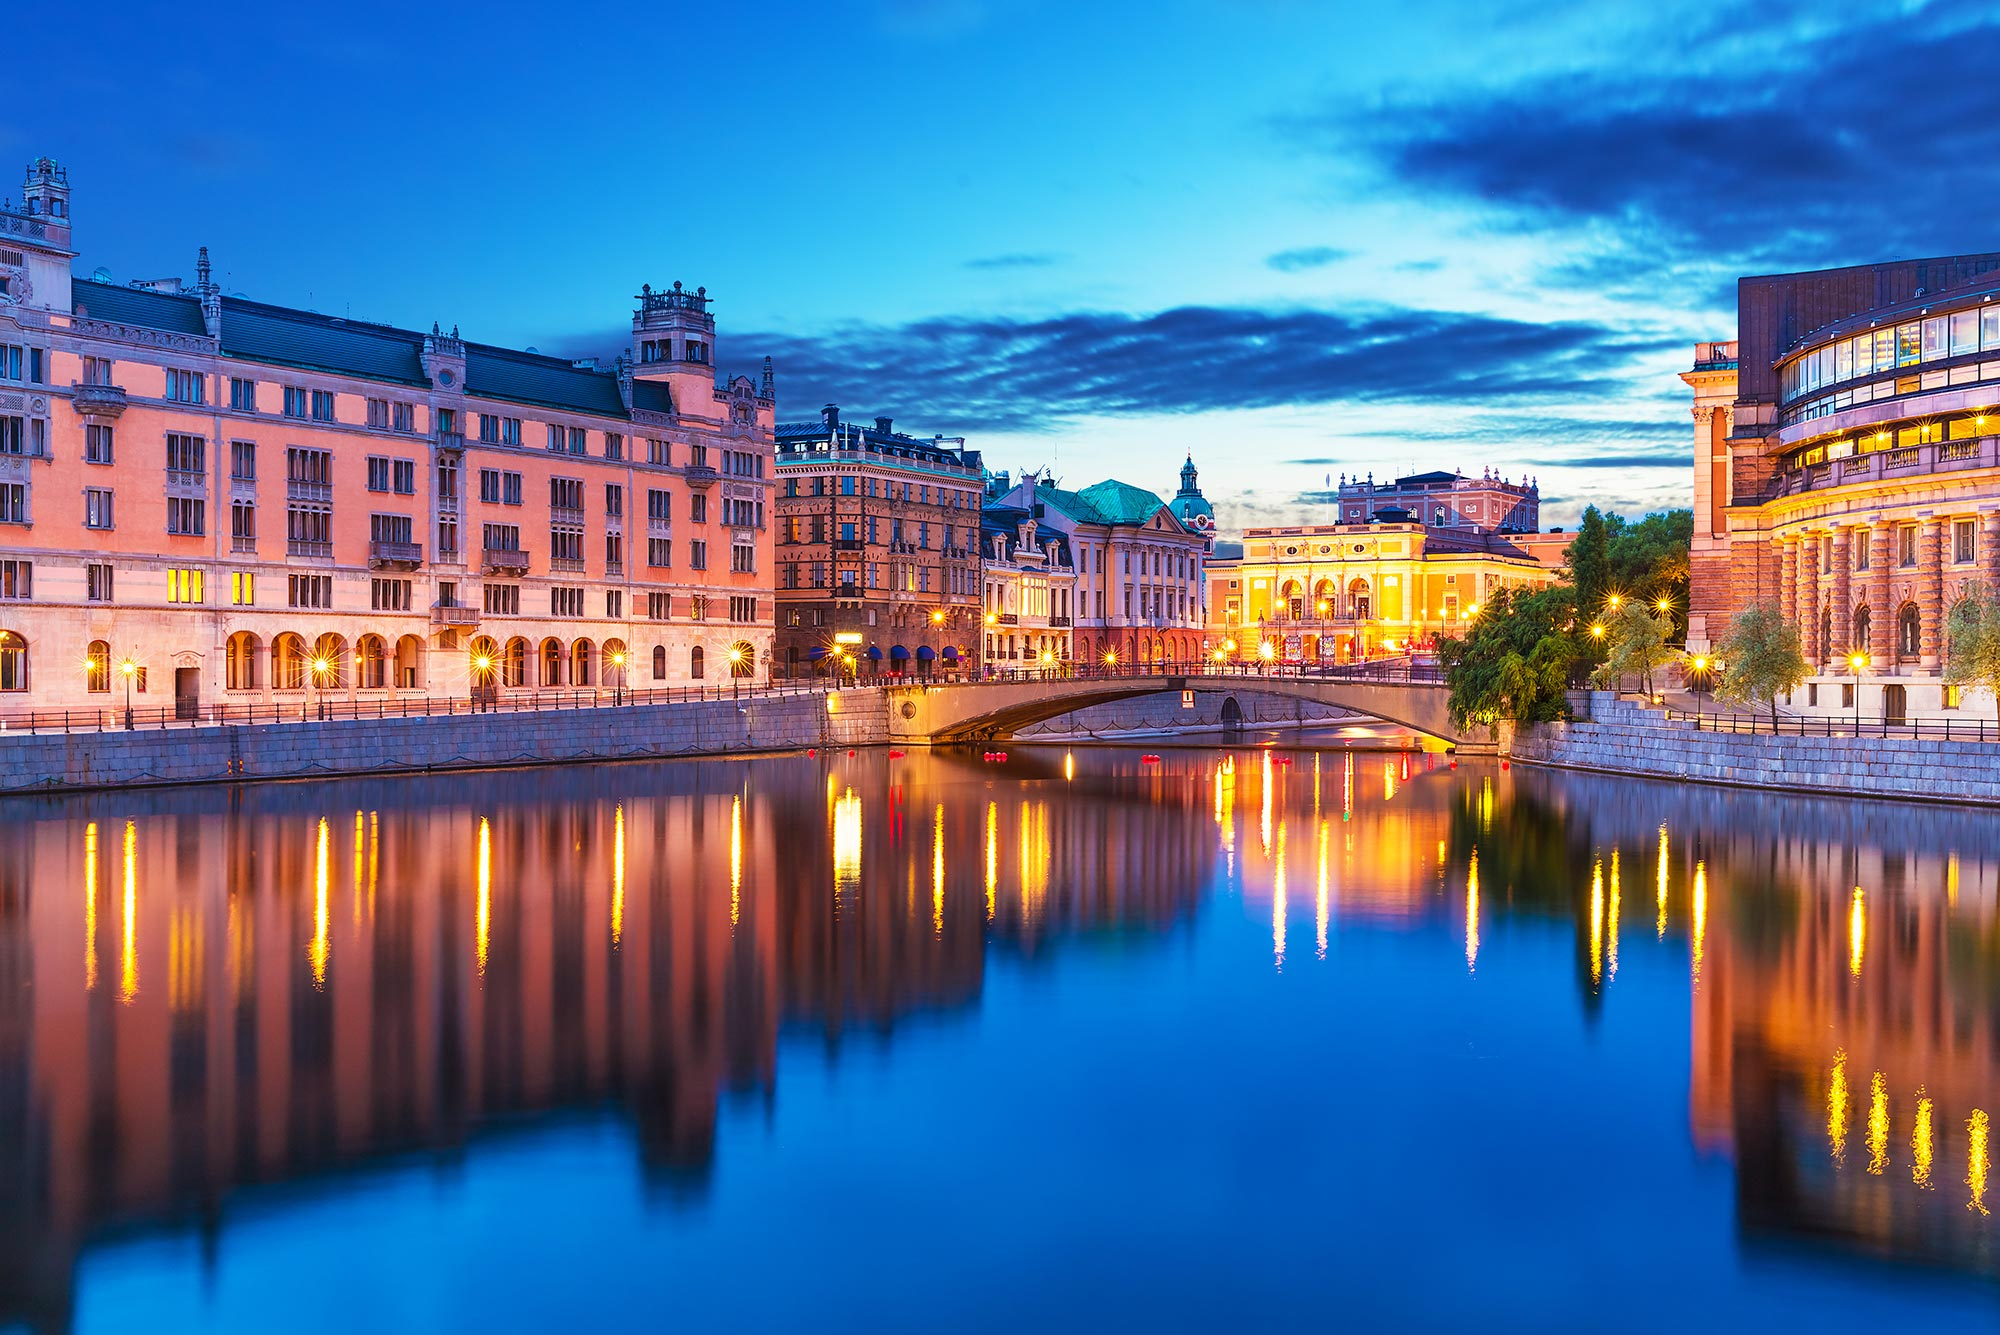 Dusk in Gamla Stan, or the Old Town, in Stockholm, Sweden.